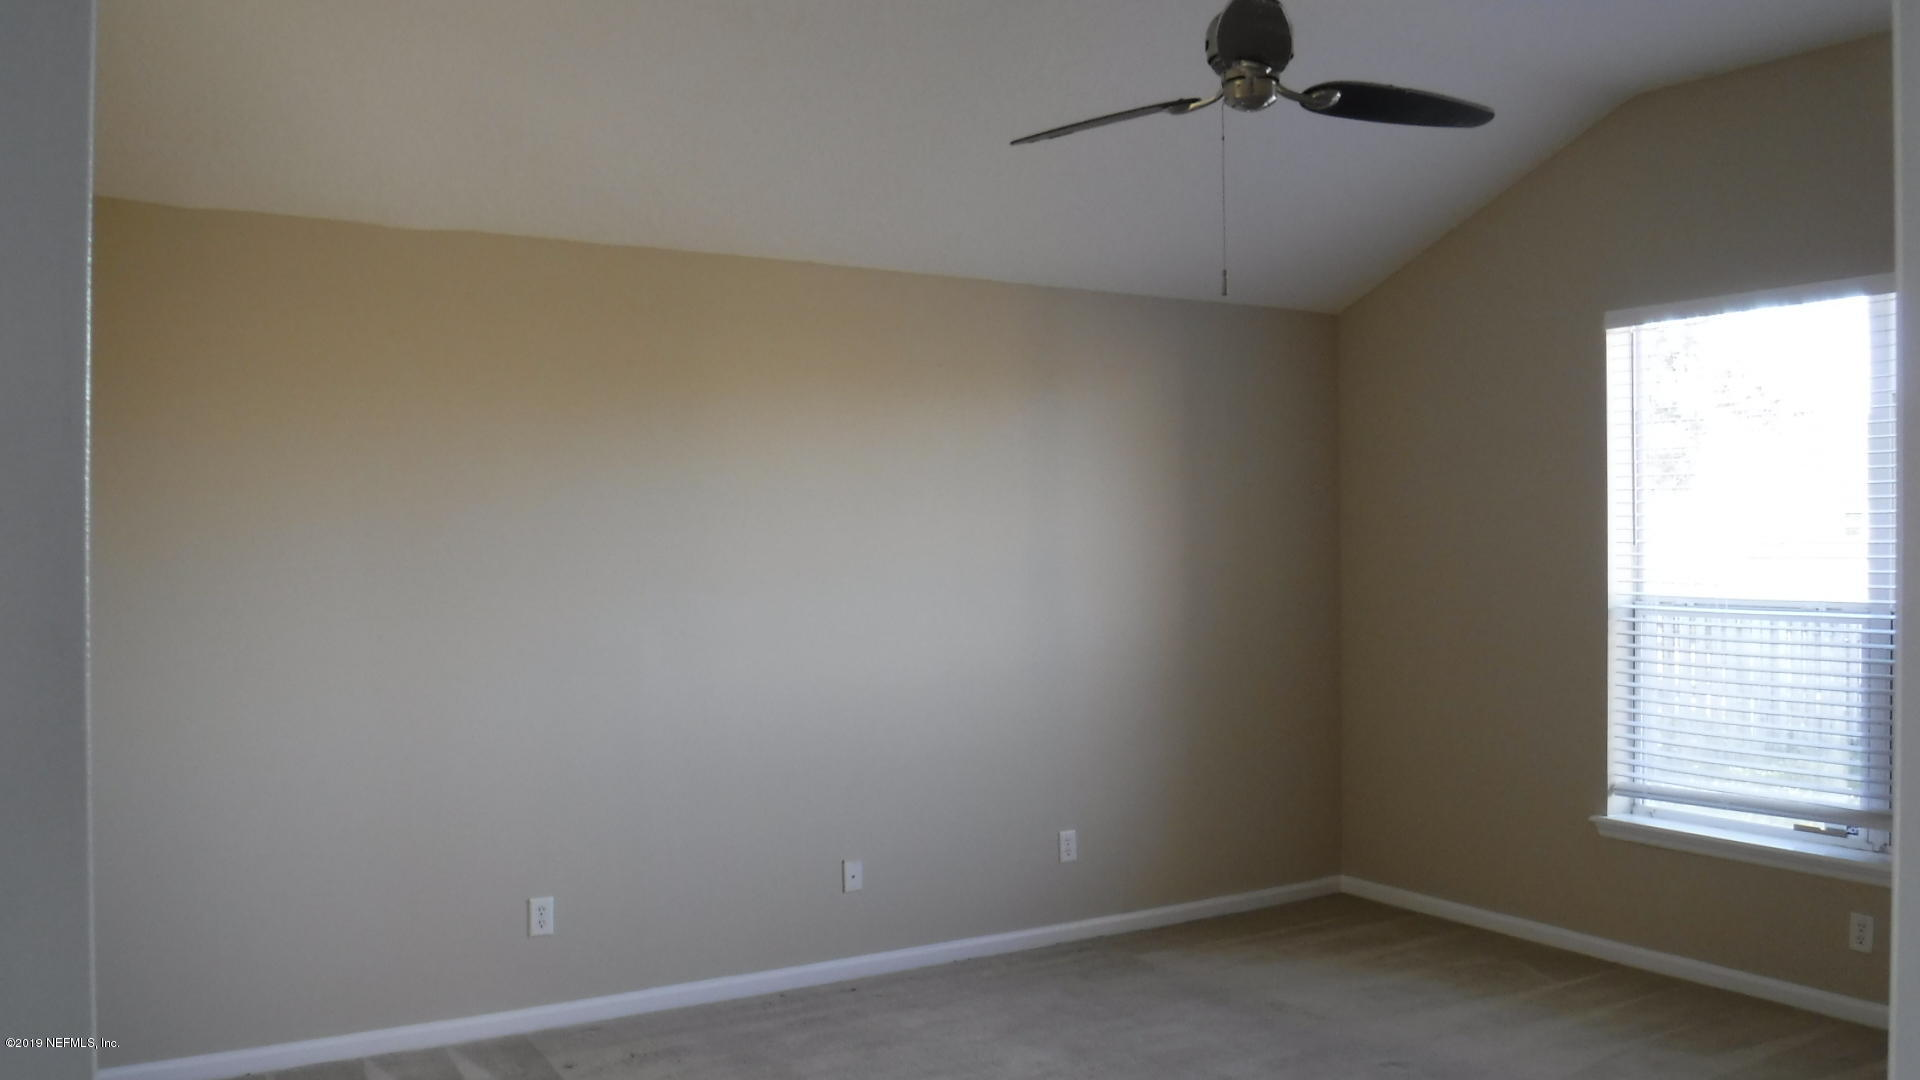 2127 CREEKMONT, MIDDLEBURG, FLORIDA 32068, 3 Bedrooms Bedrooms, ,2 BathroomsBathrooms,Rental,For Rent,CREEKMONT,1082685